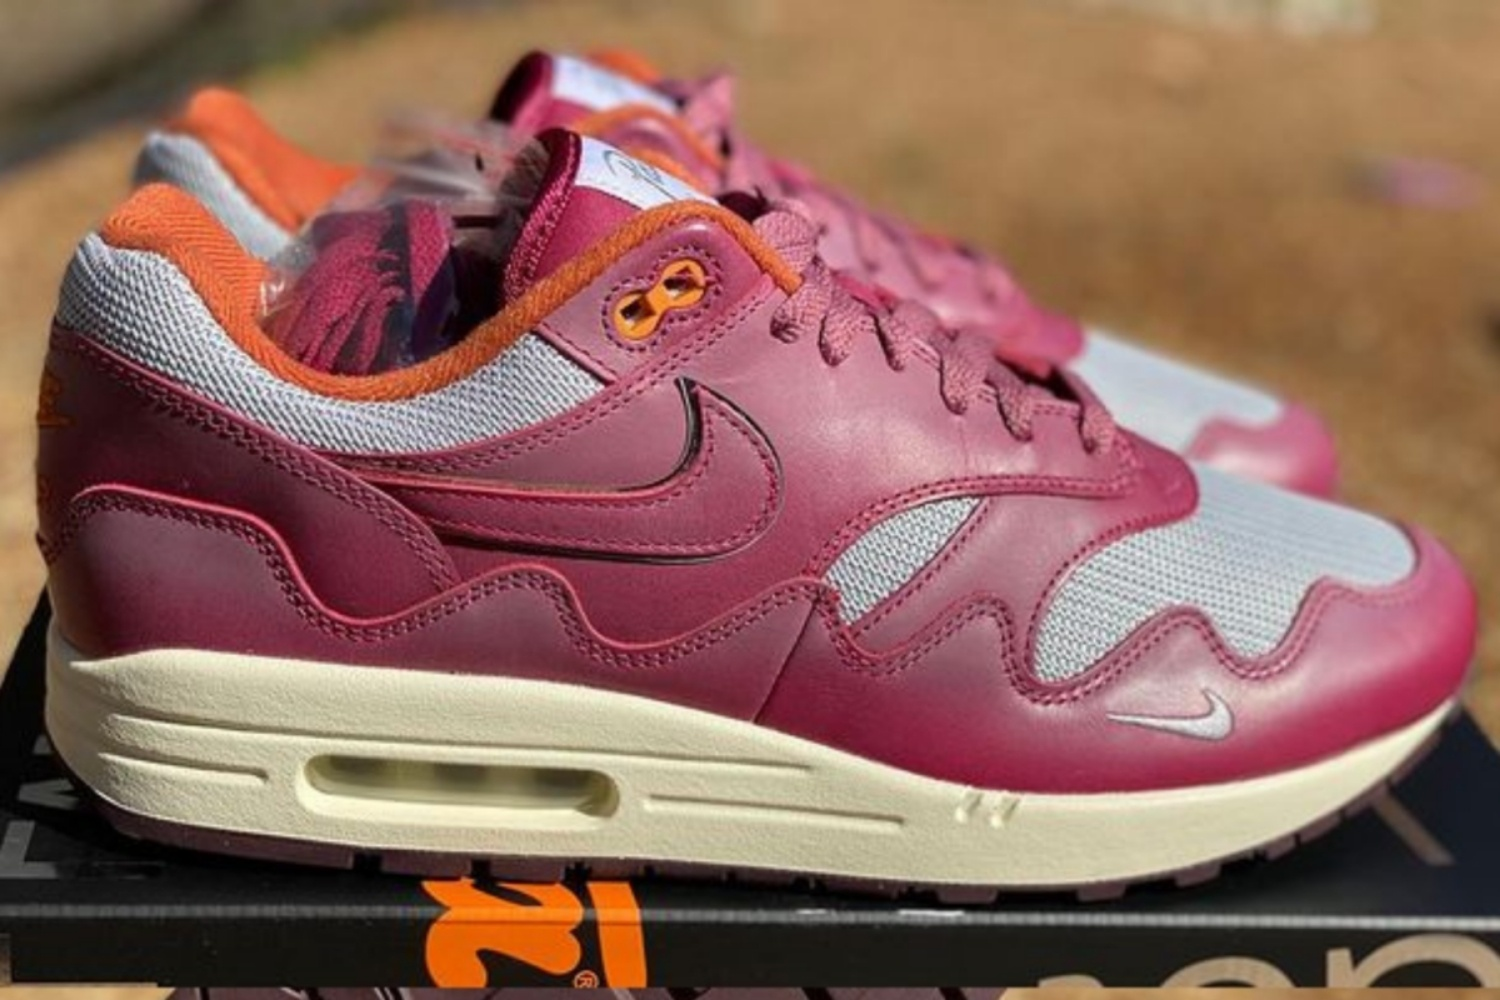 Check out the Patta x The Wave Air Max 1 'Maroon'